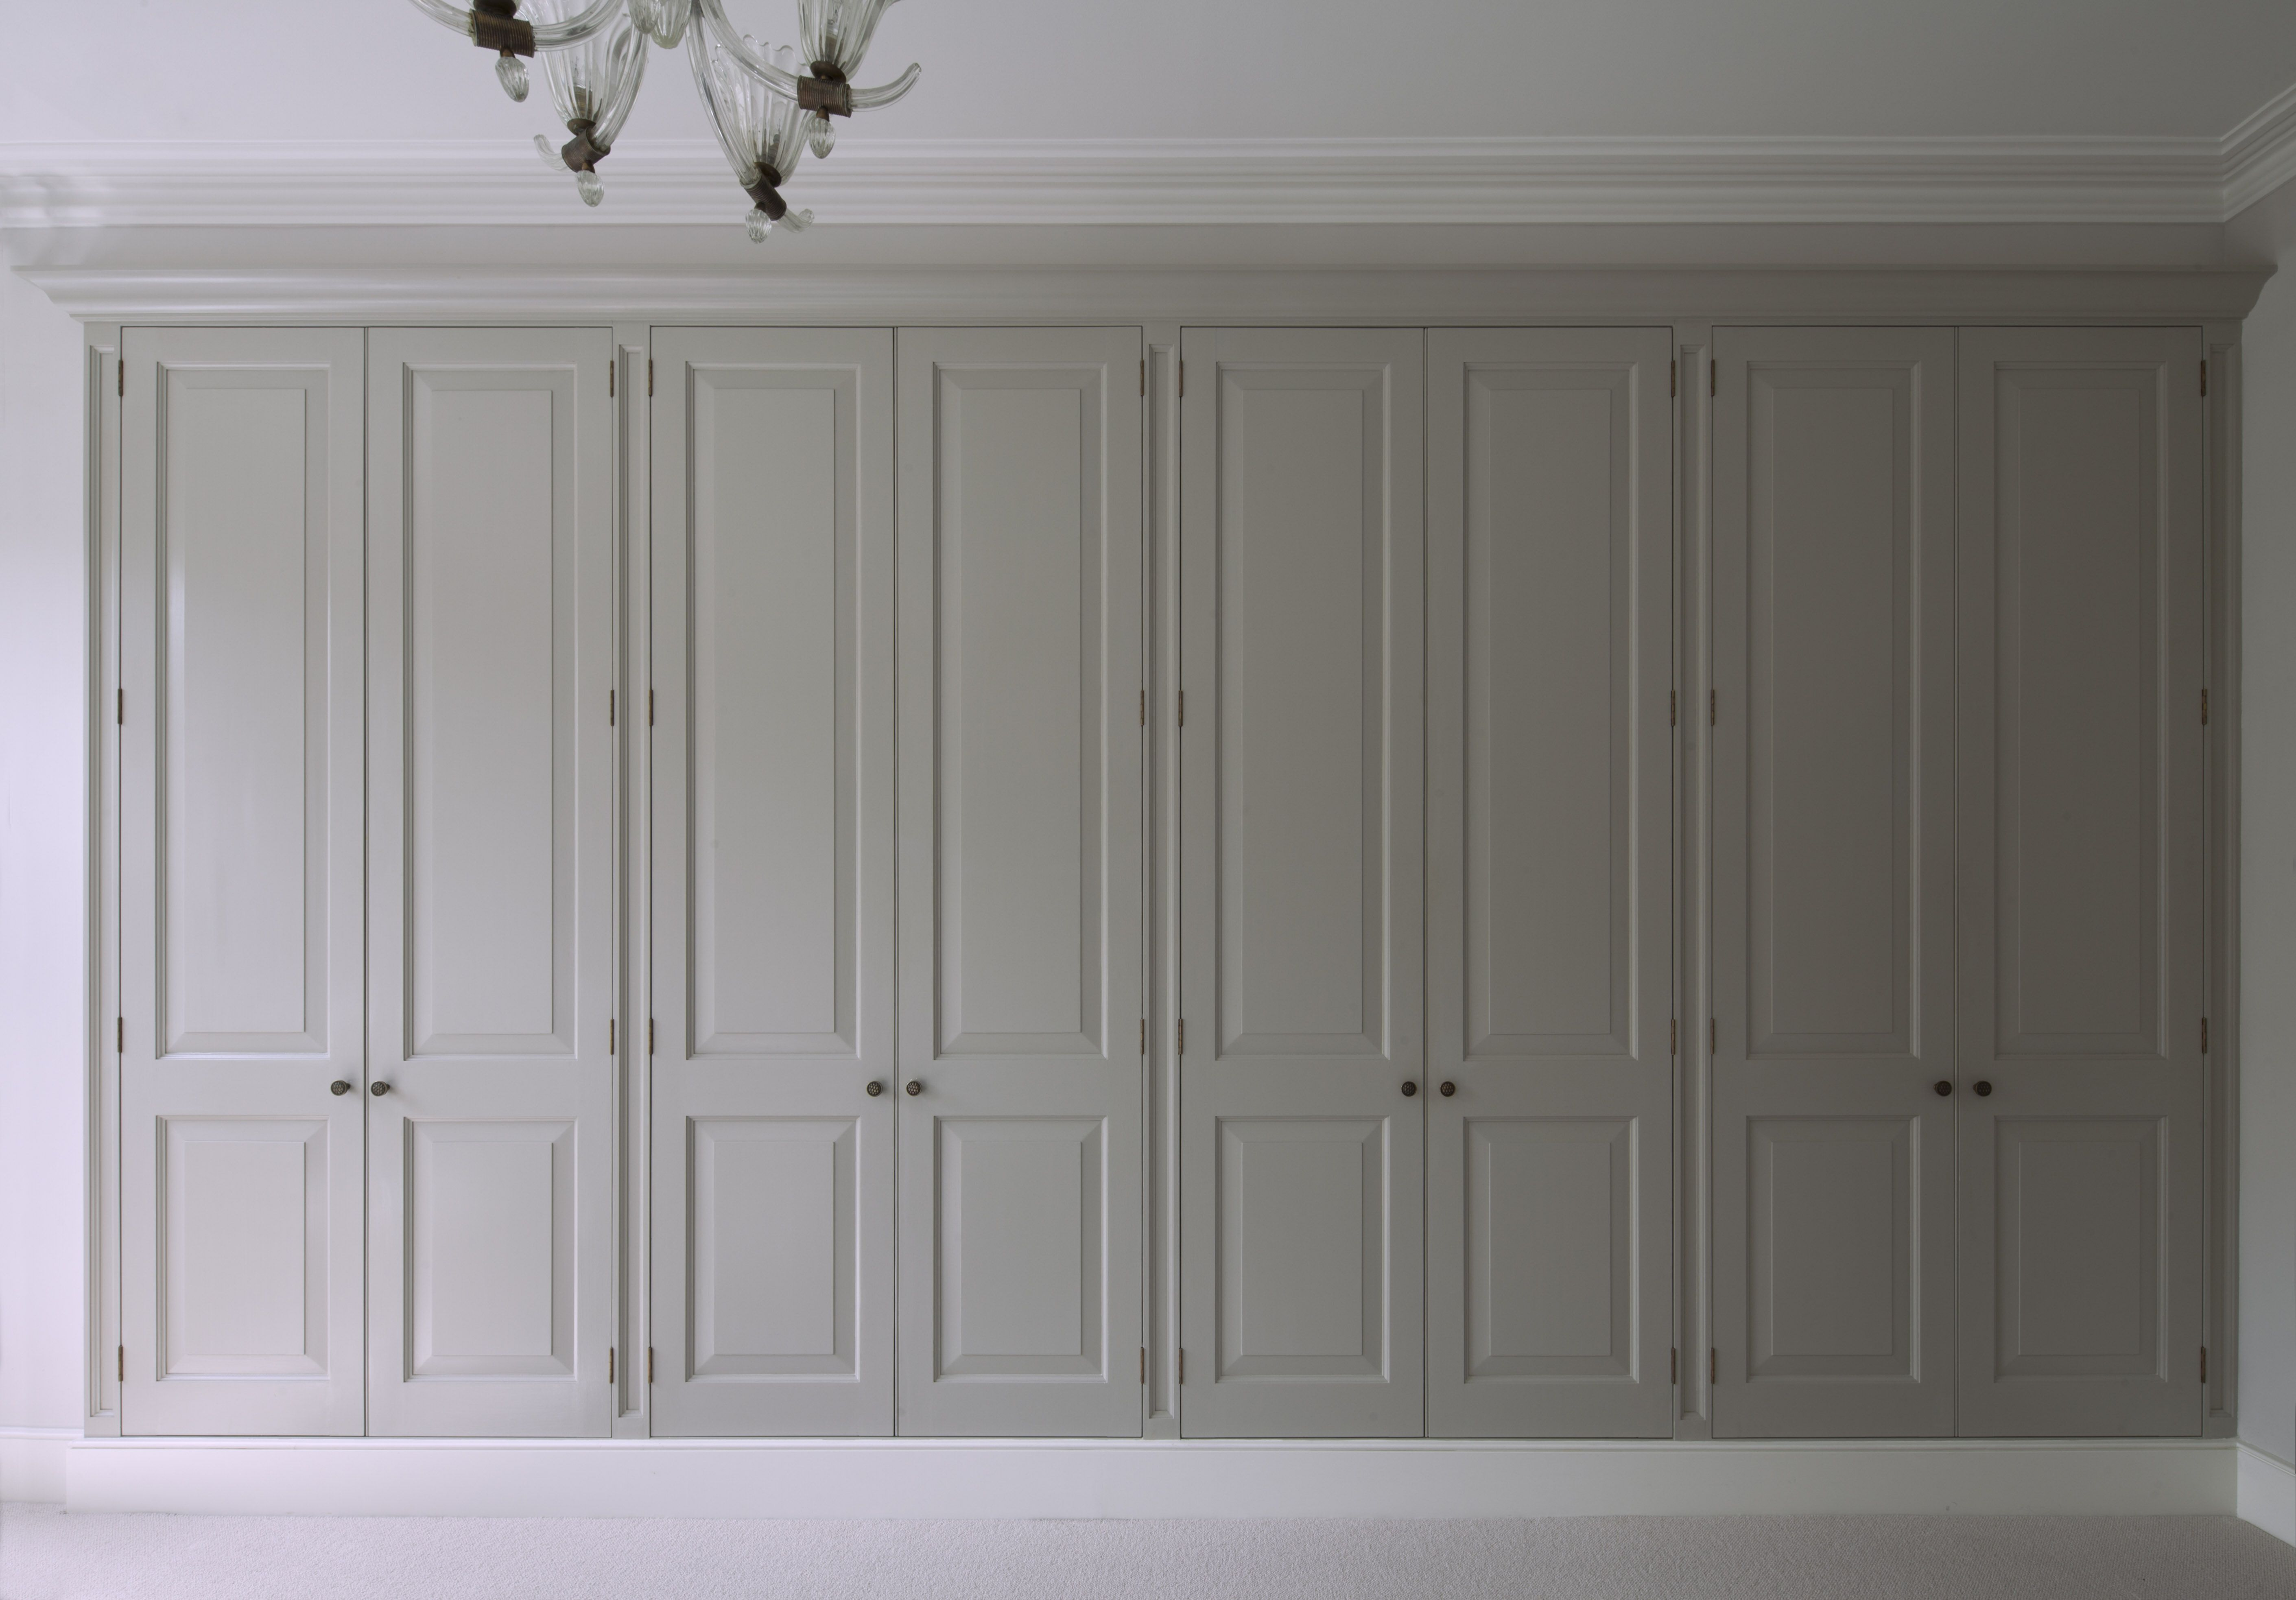 Master Bedroom Bespoke Wardrobes, Timber Doors With Raised And Fielded